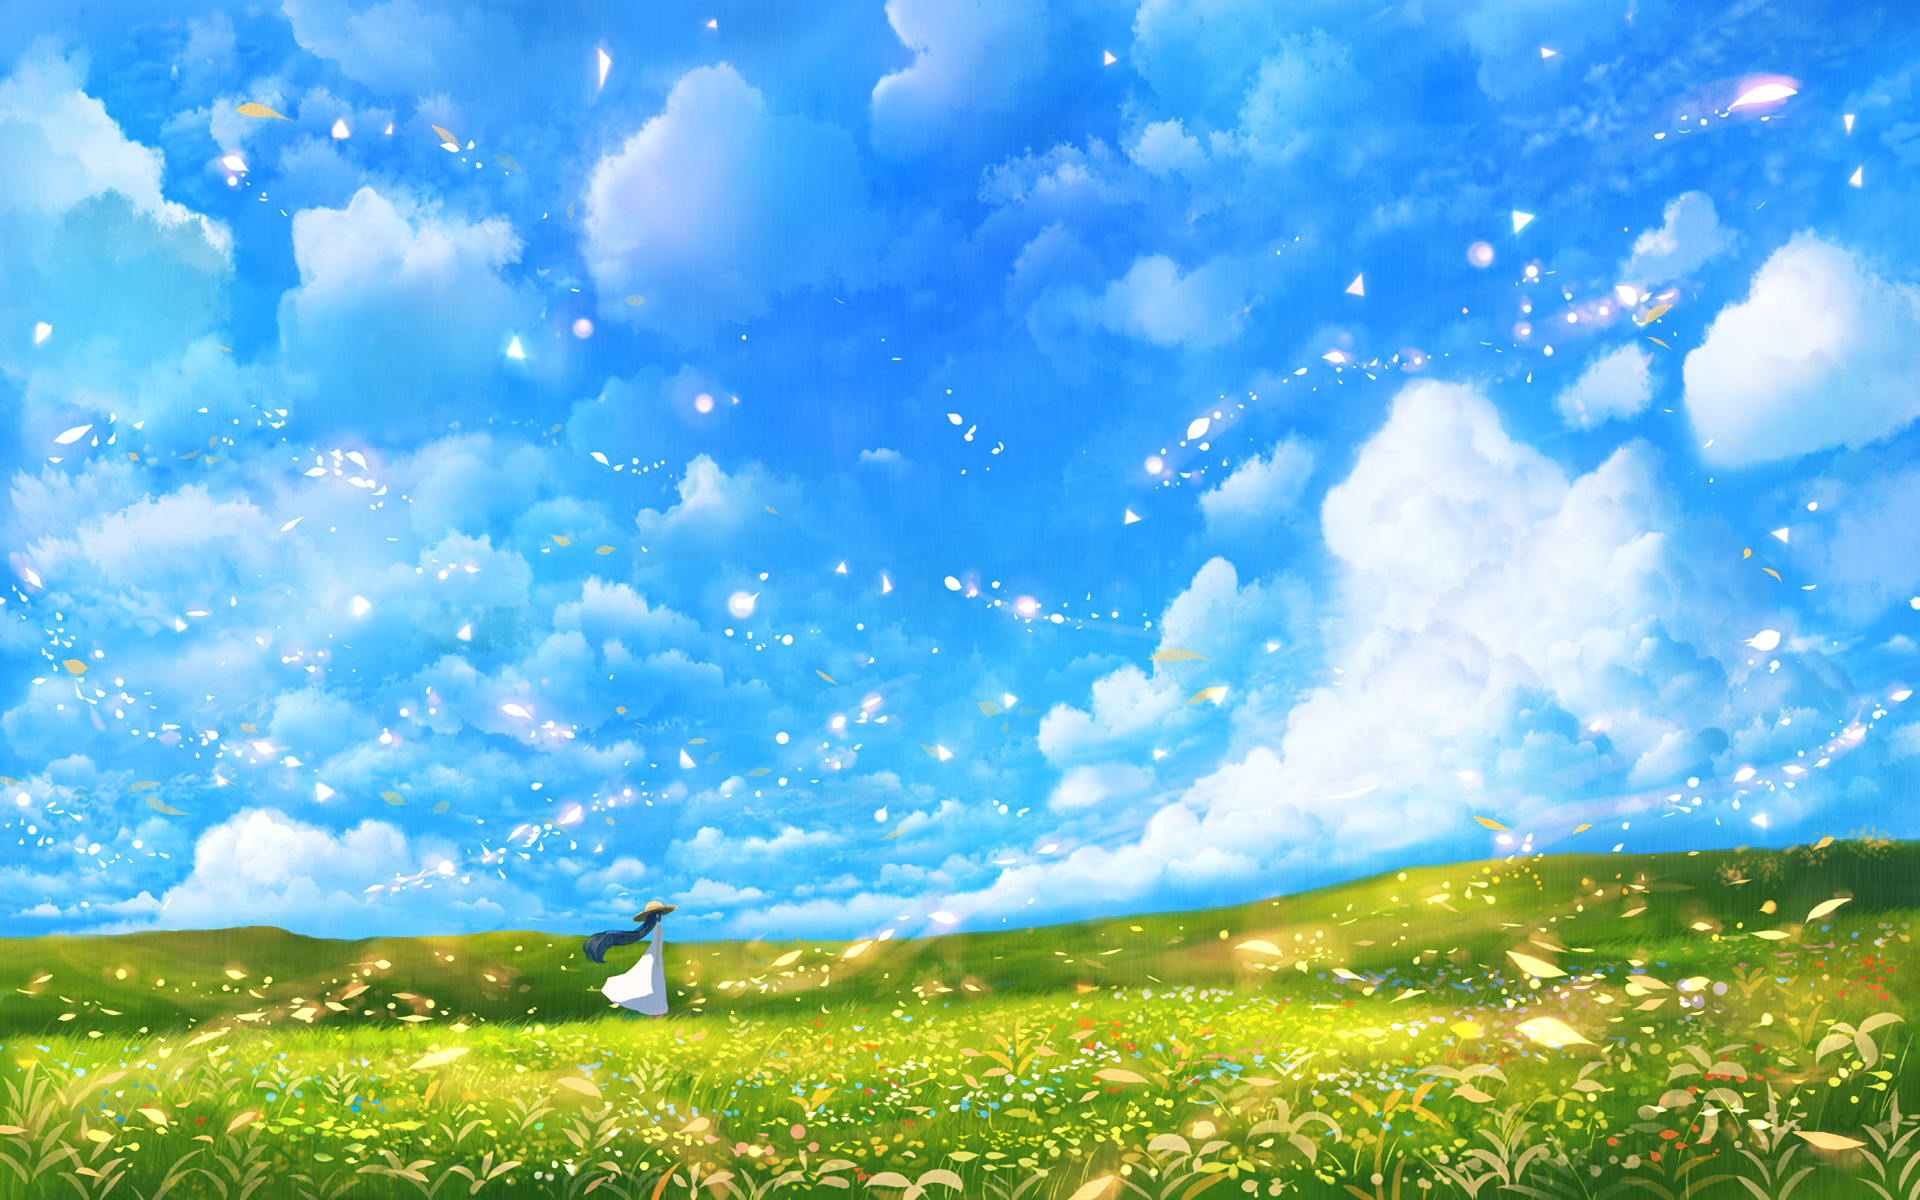 Anime Summer Beautiful Landscape Wallpapers - Wallpaper Cave